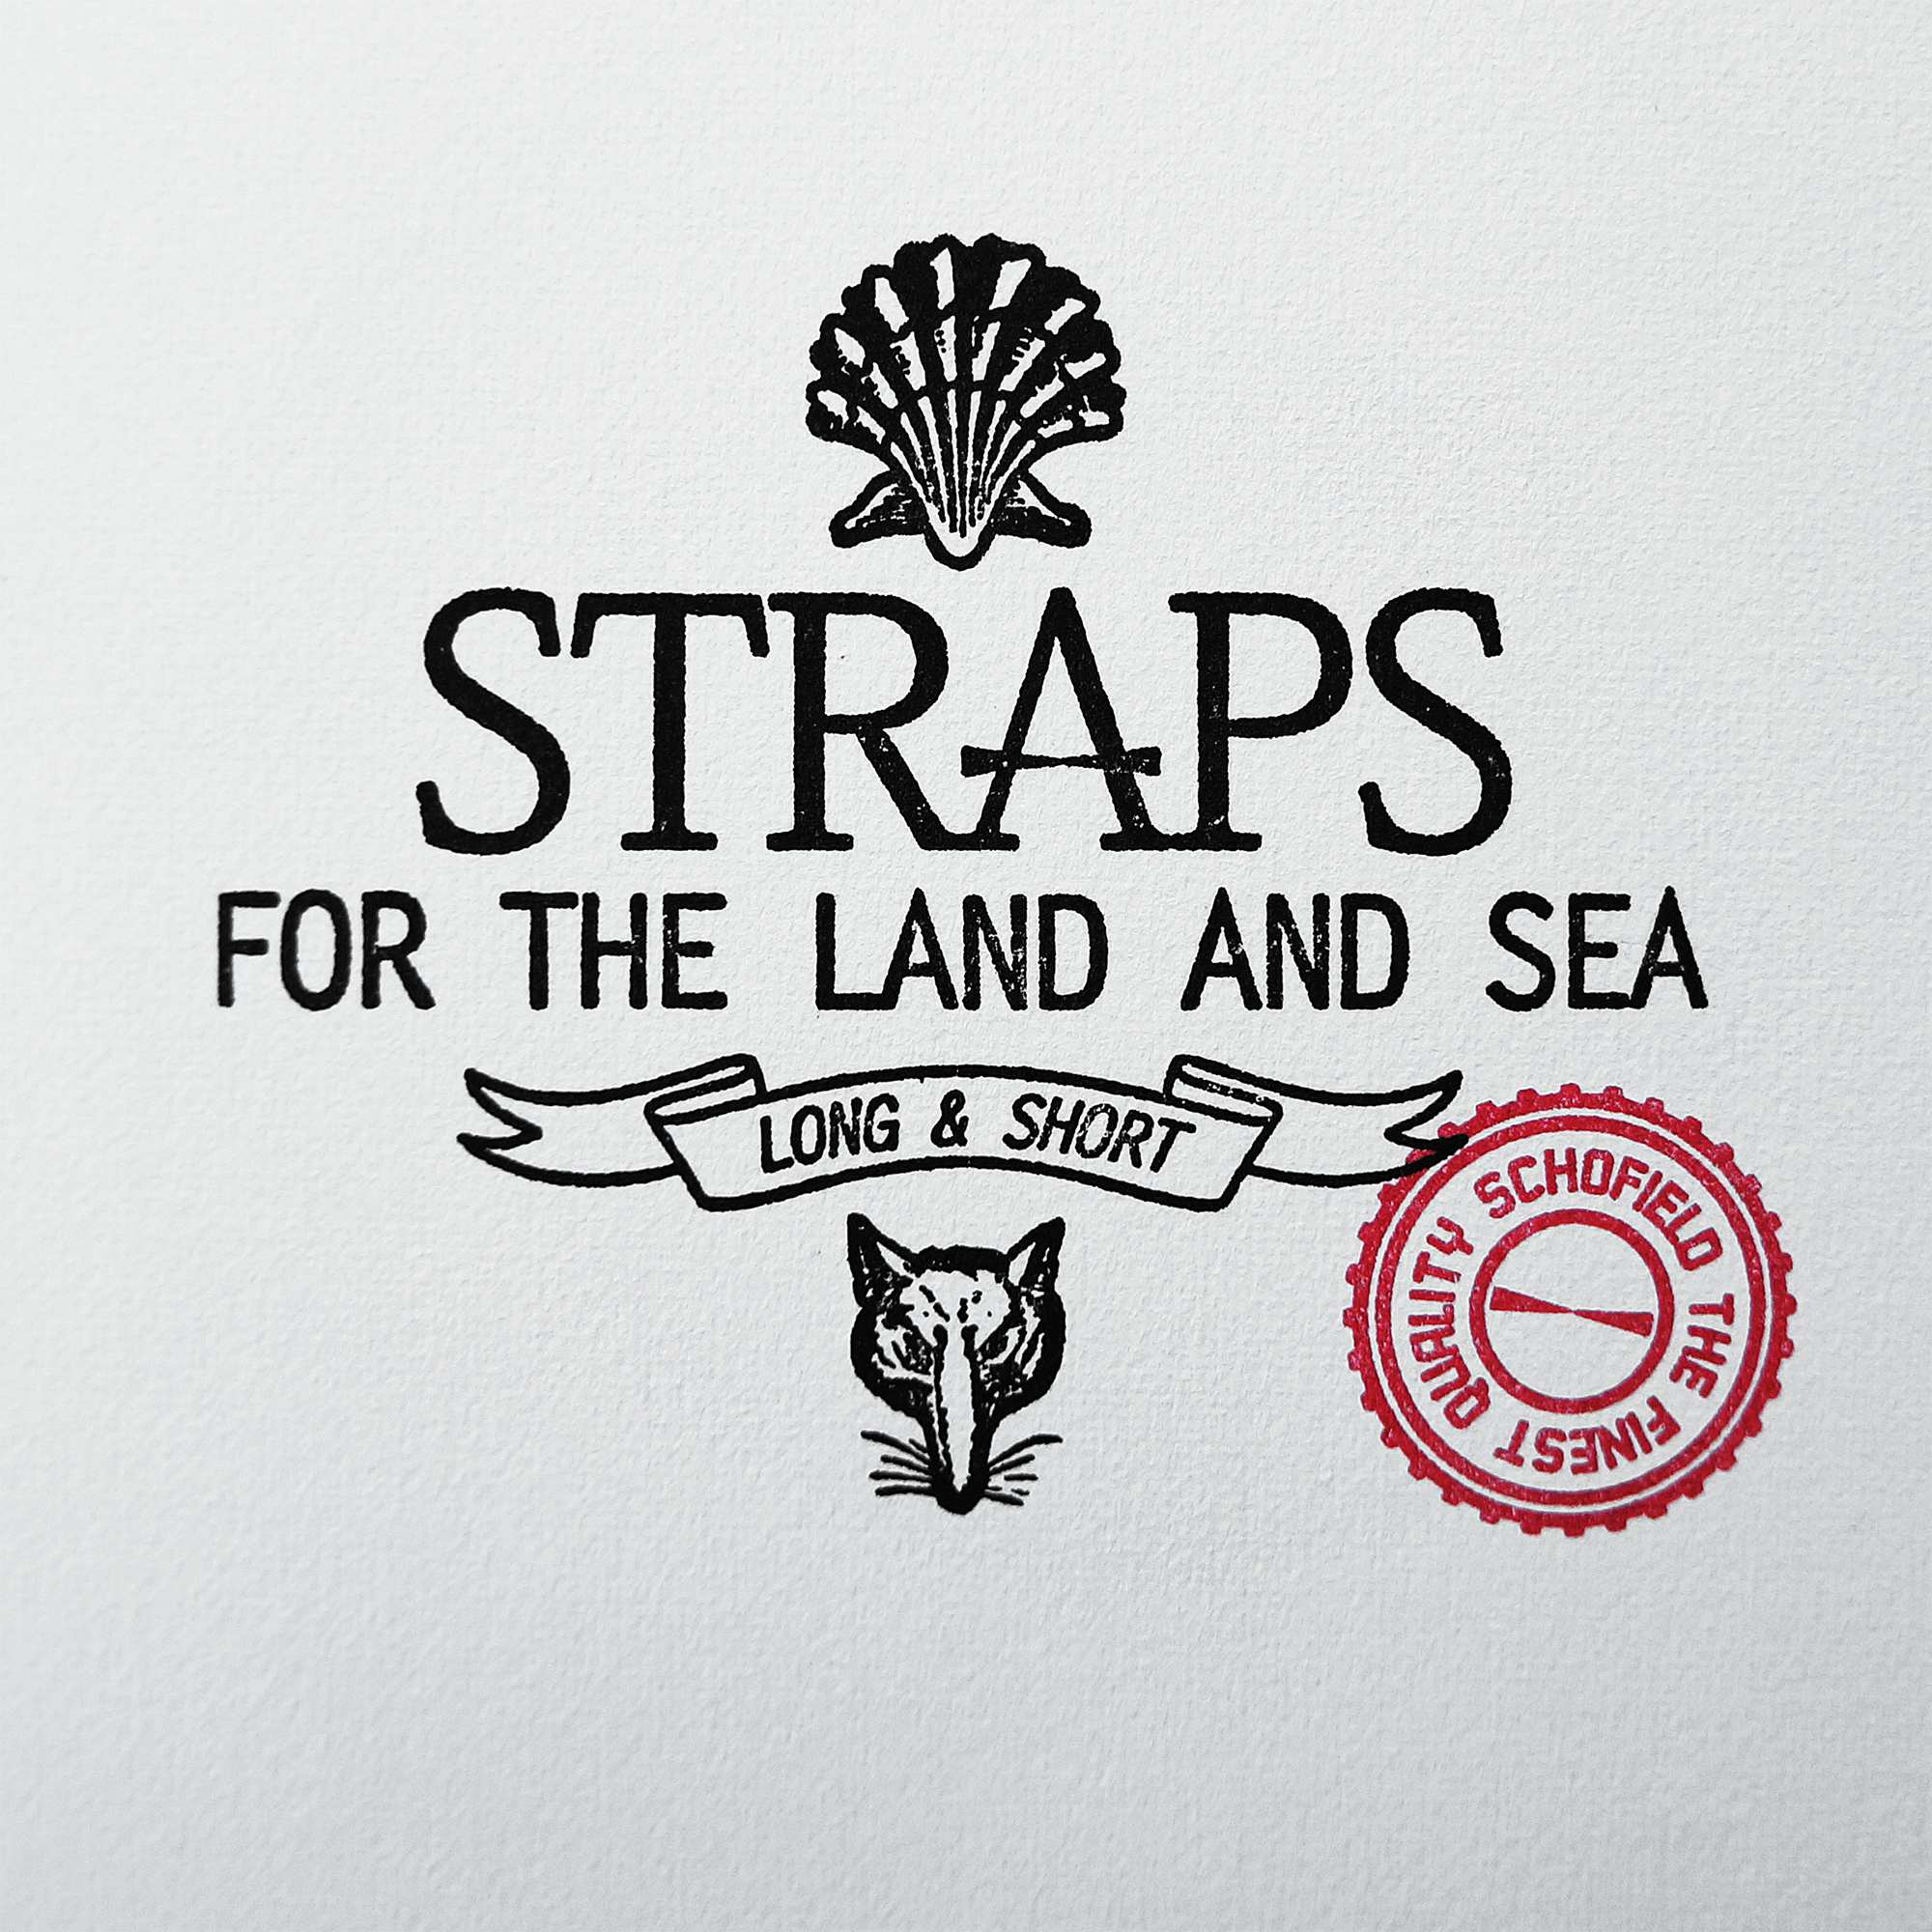 Straps for the land and sea - 2000